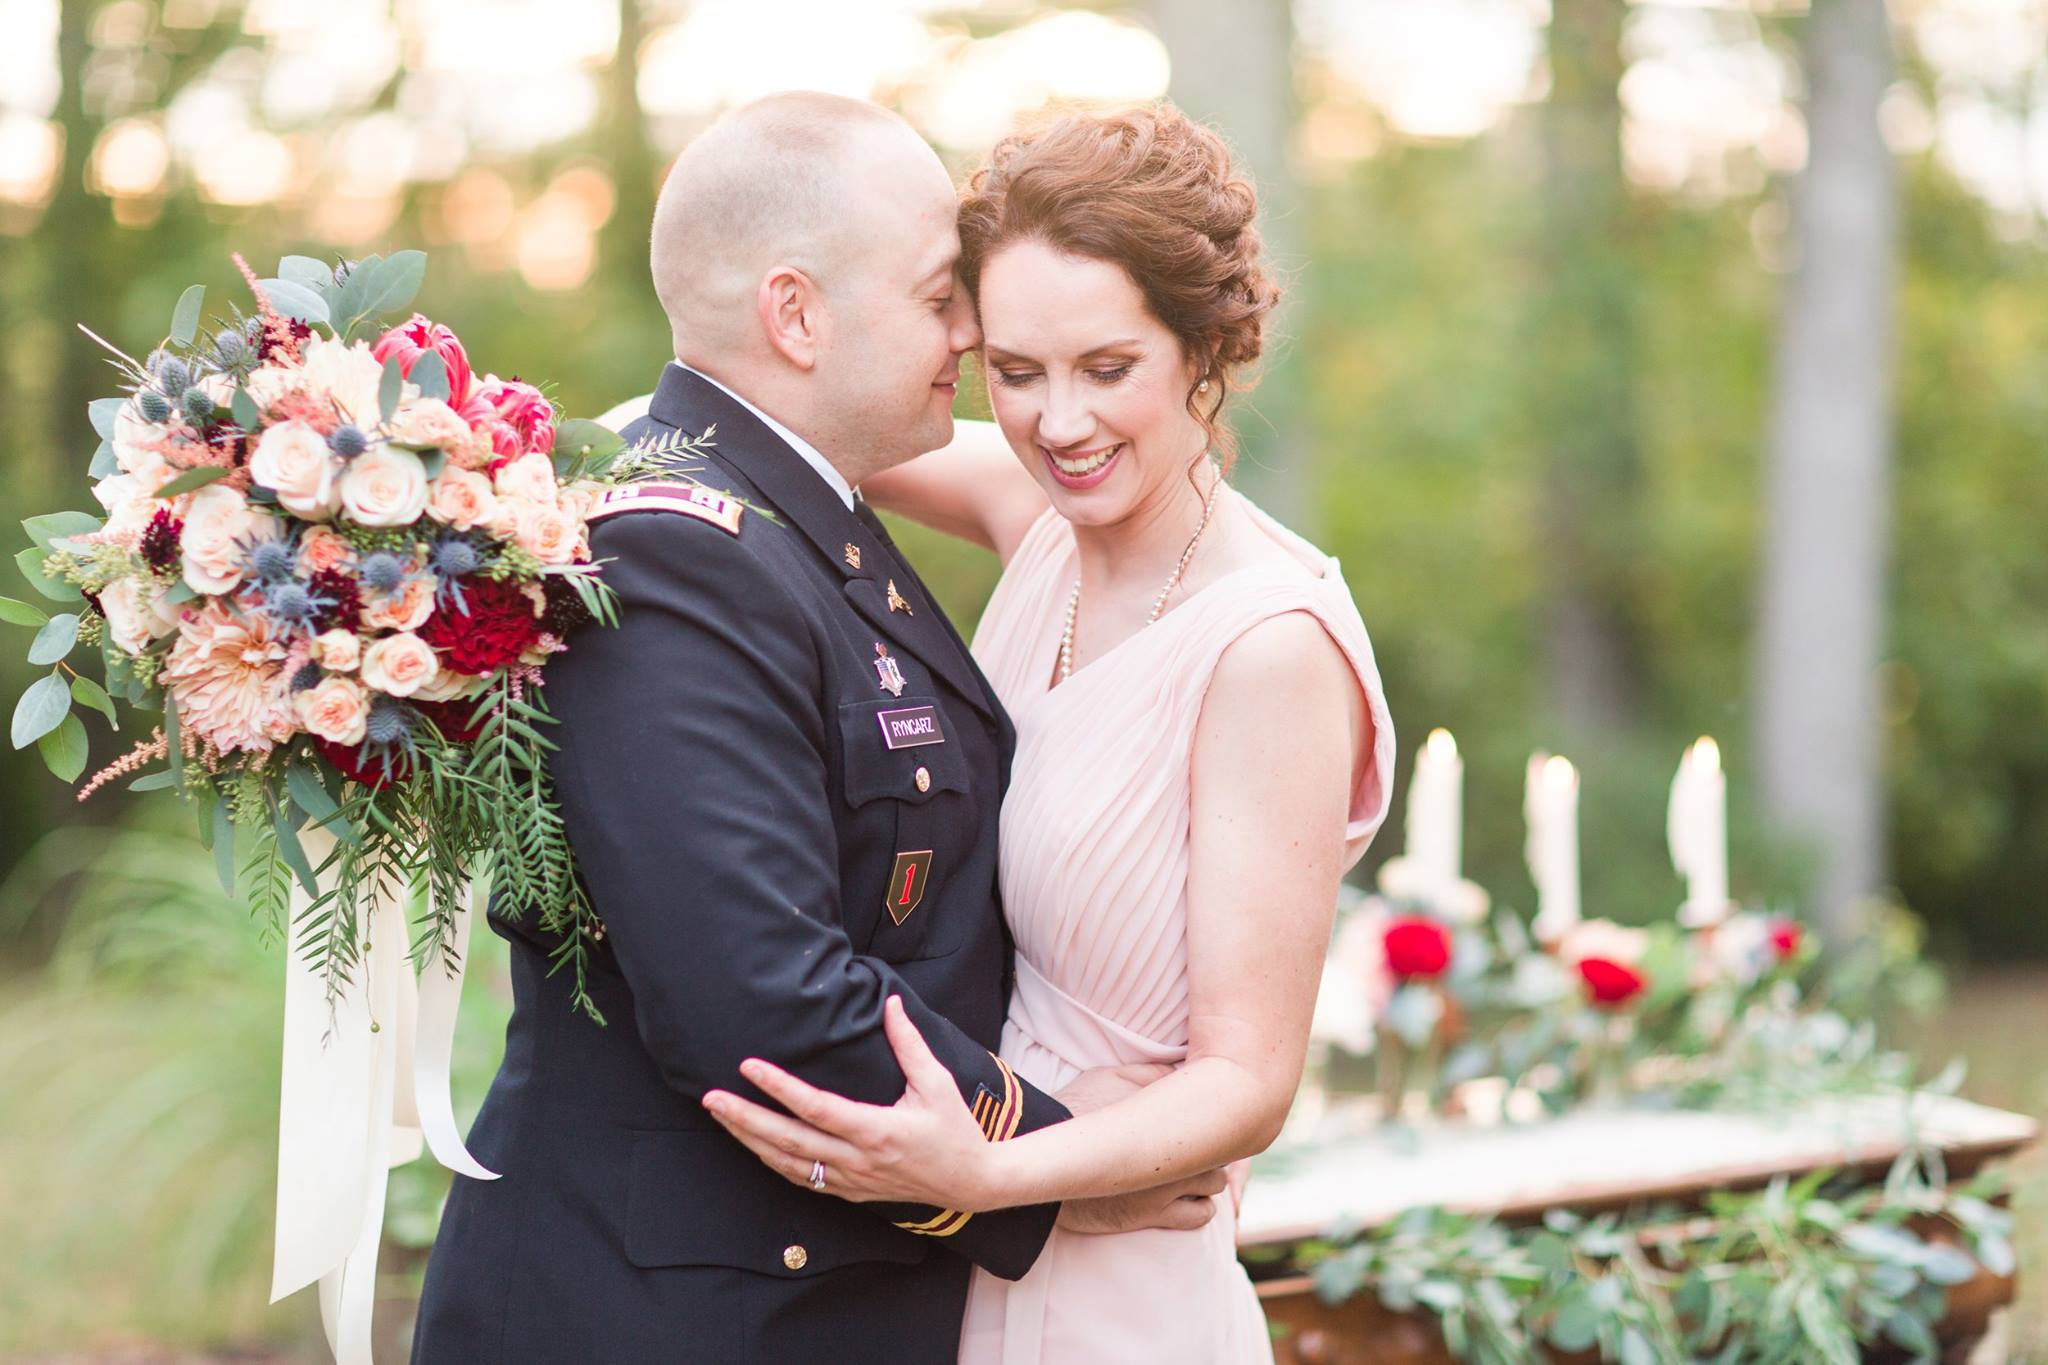 Bride and Groom Outdoor Military Wedding Vow Renewal Blush Flowers.jpg